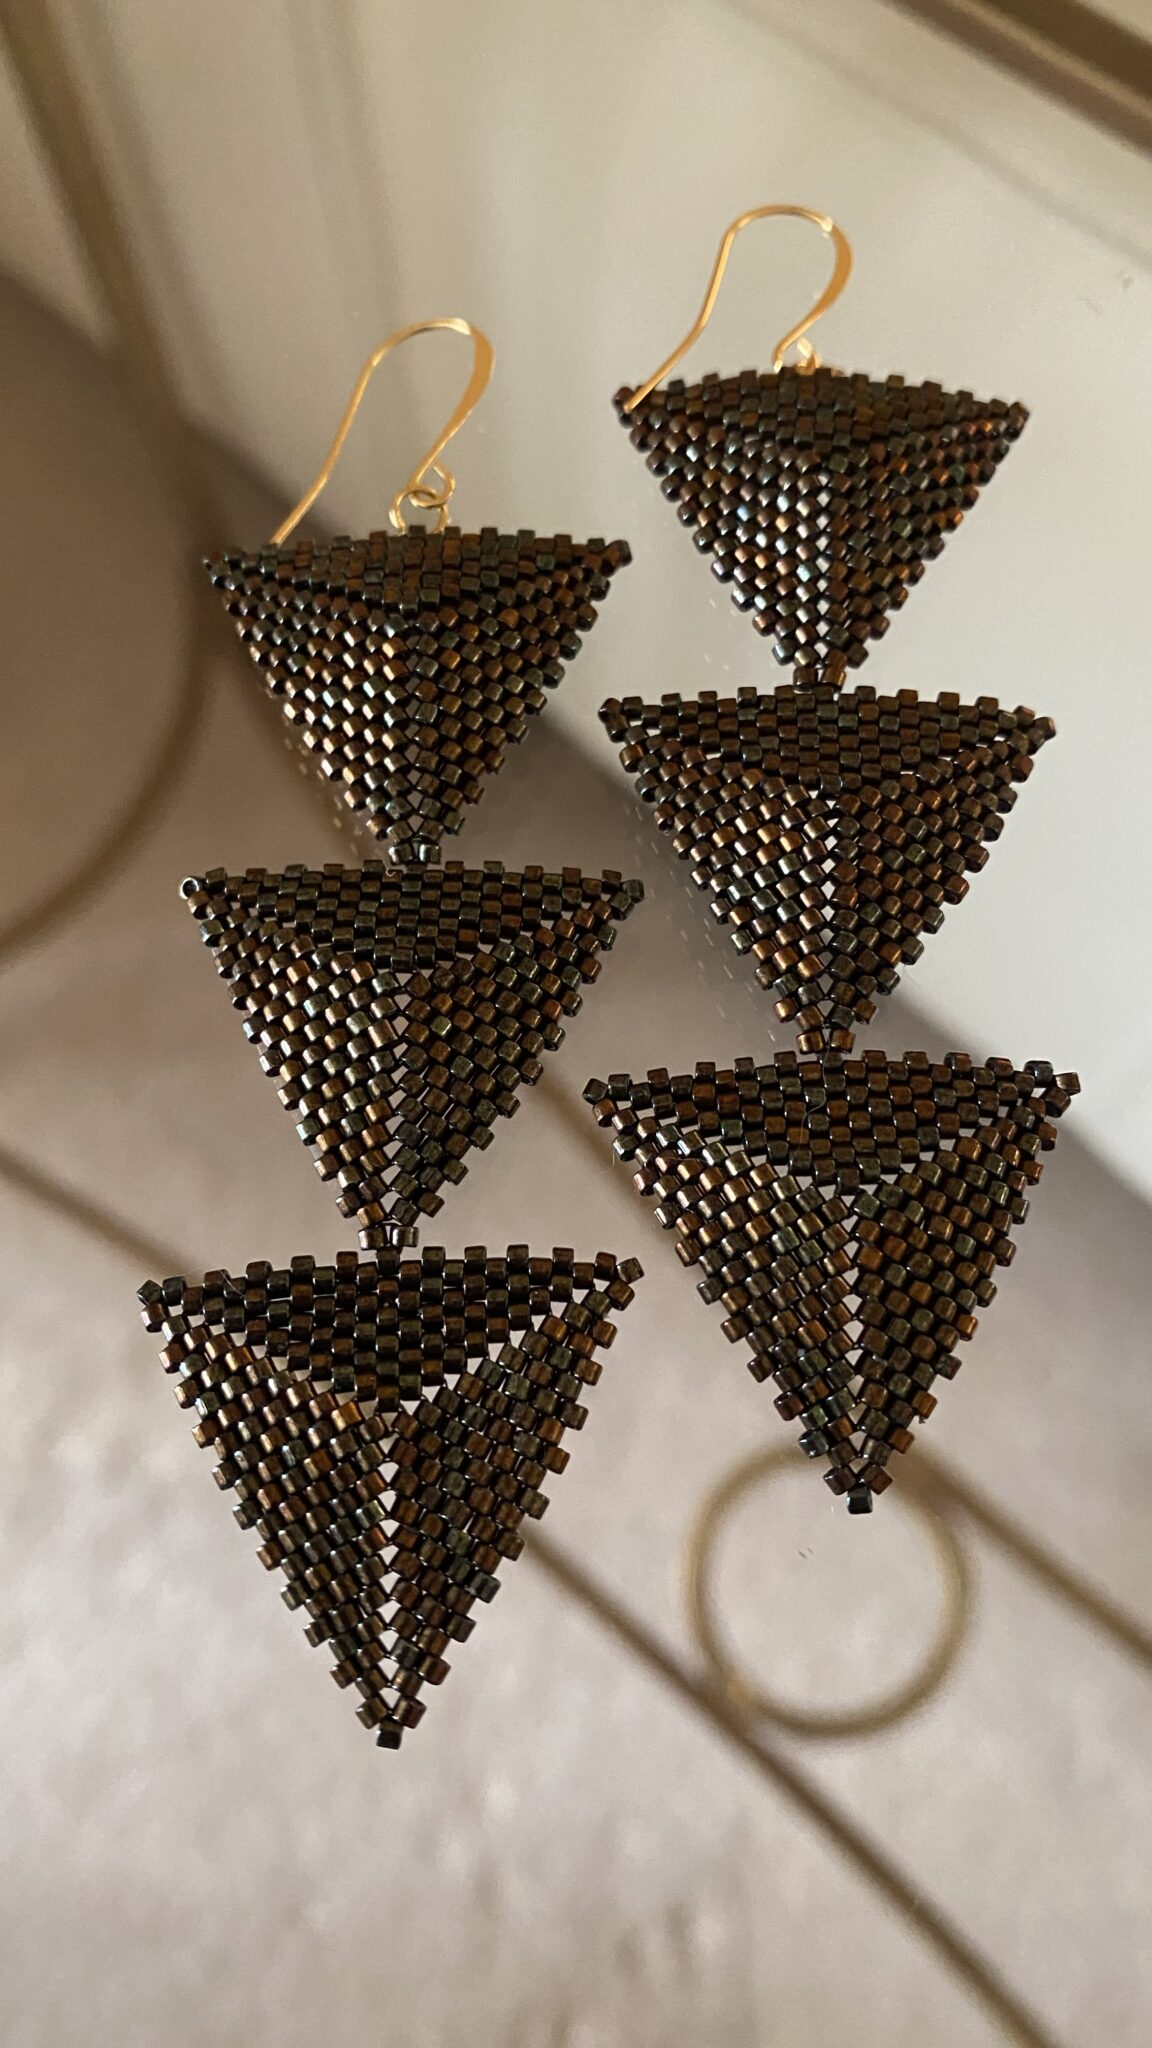 14k Gold Plated Wires Japanese Seed Bead Earrings And Wires. Handwoven. COVET AND DESIRE